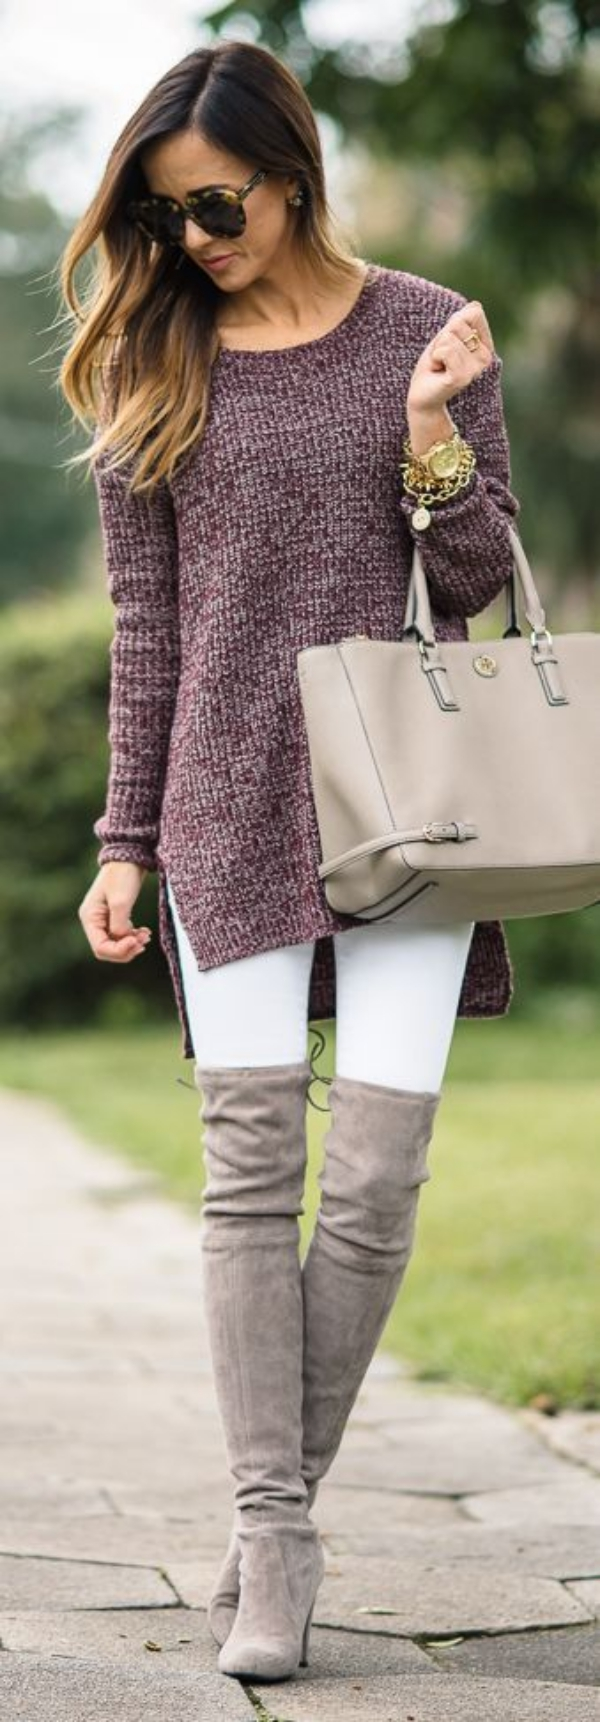 Autumn-Fashion-Outfits-Ideas-1